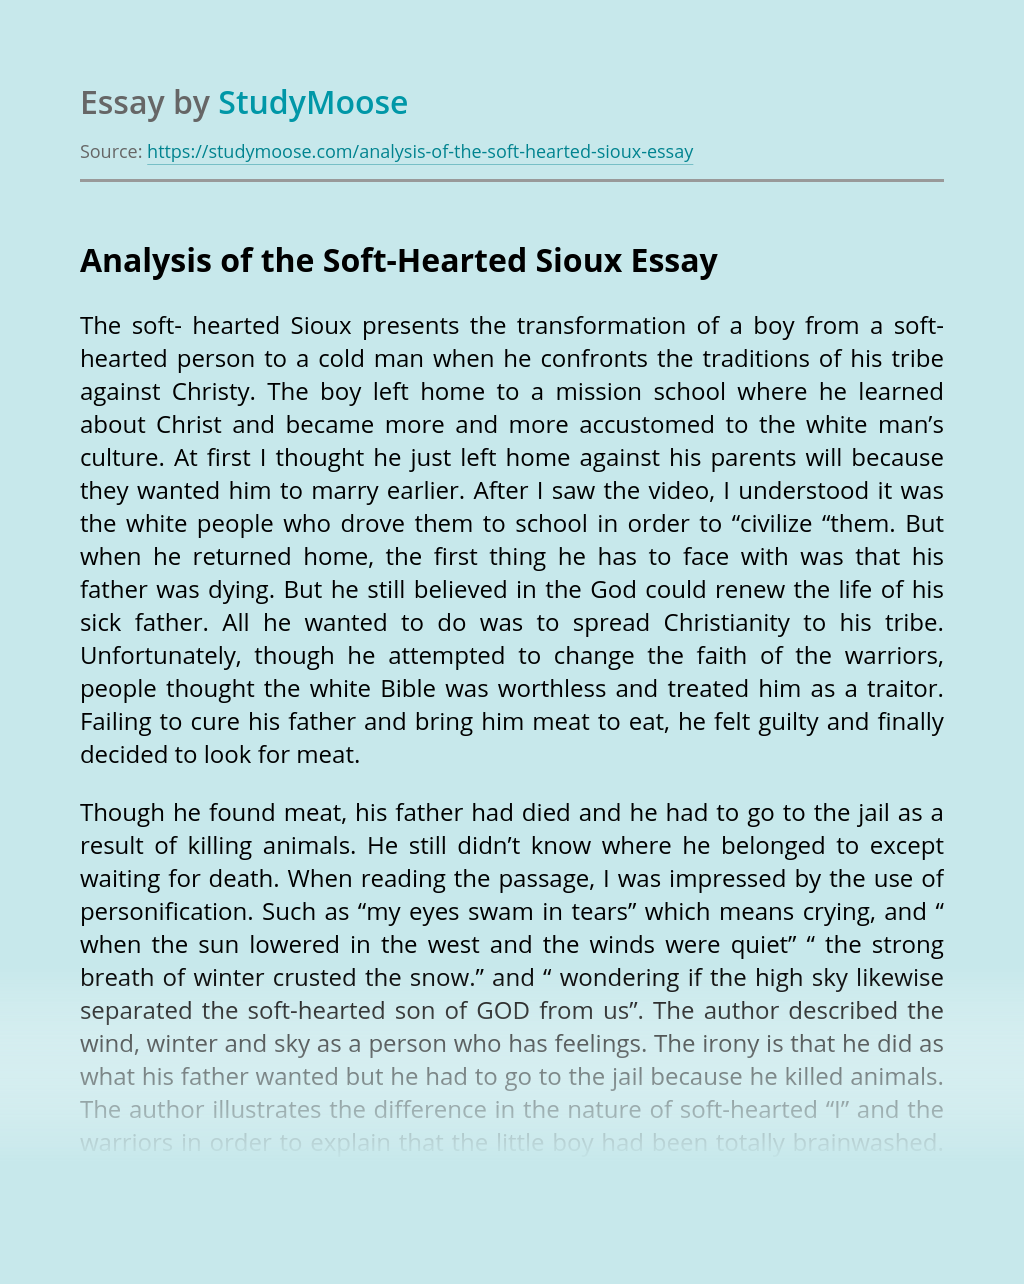 Analysis of the Soft-Hearted Sioux